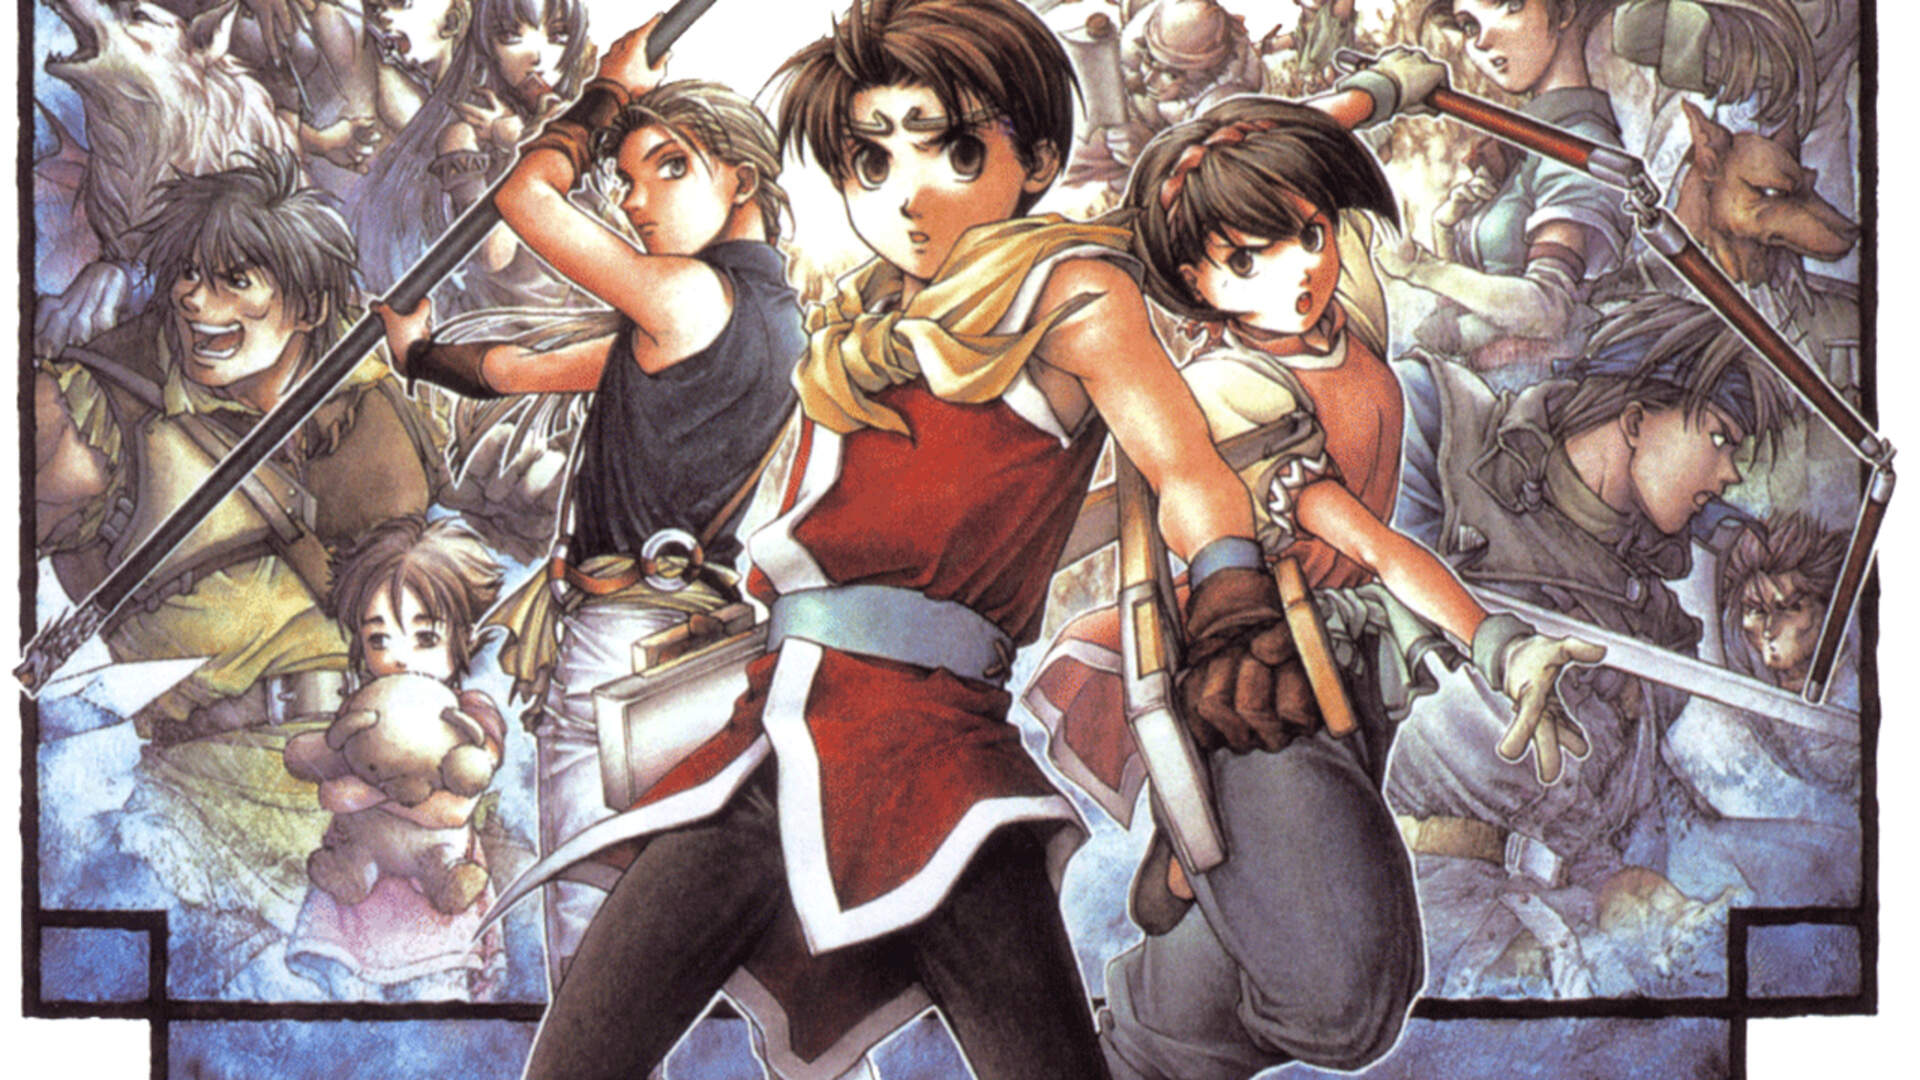 Suikoden 2 is the Best PlayStation 1 RPG Ever